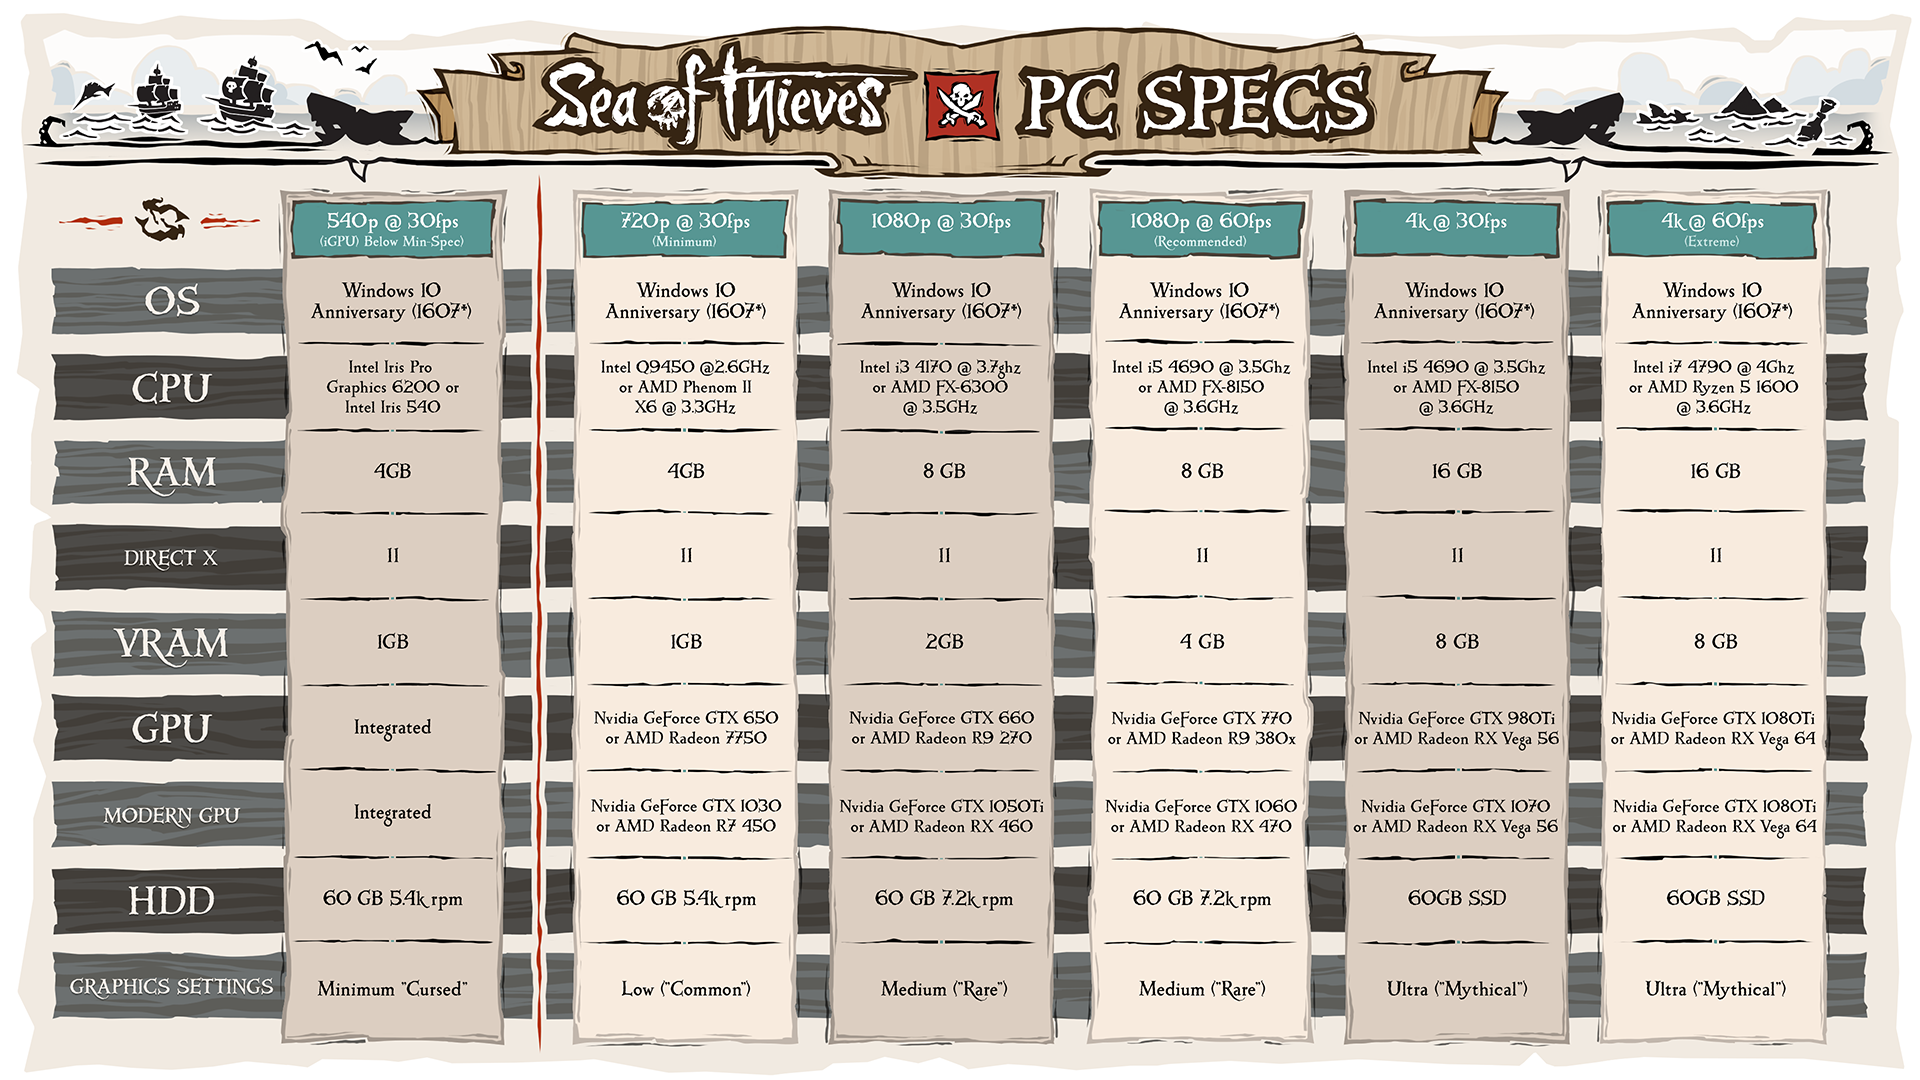 Sea of Thieves PC system requirements chart